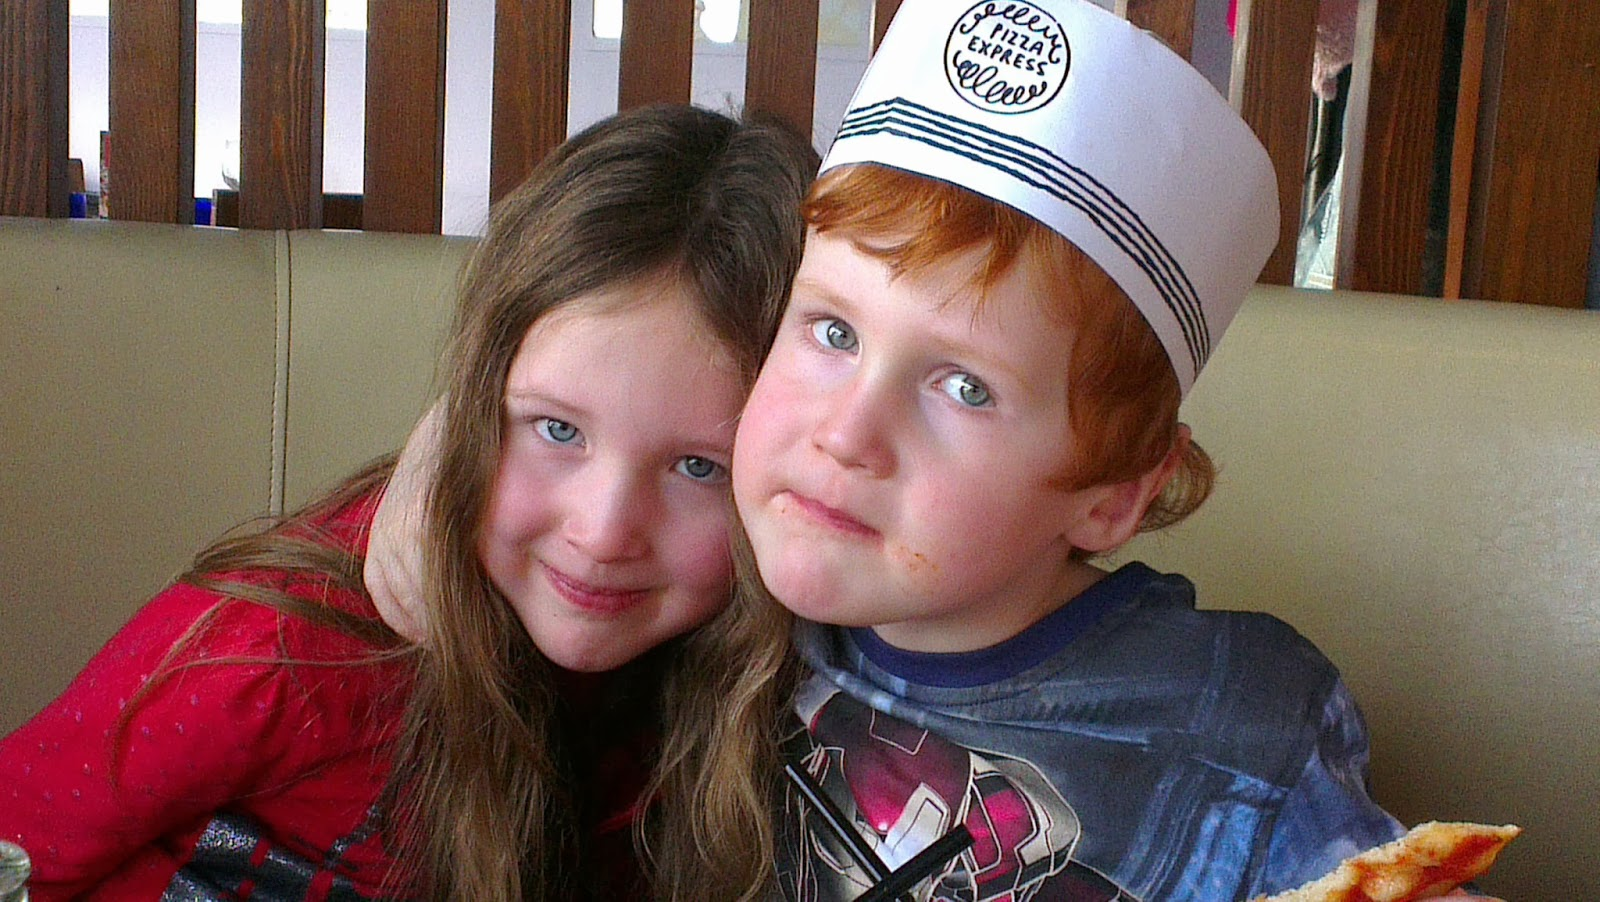 Caitlin and Ieuan at Pizza Express, Cardiff Bay